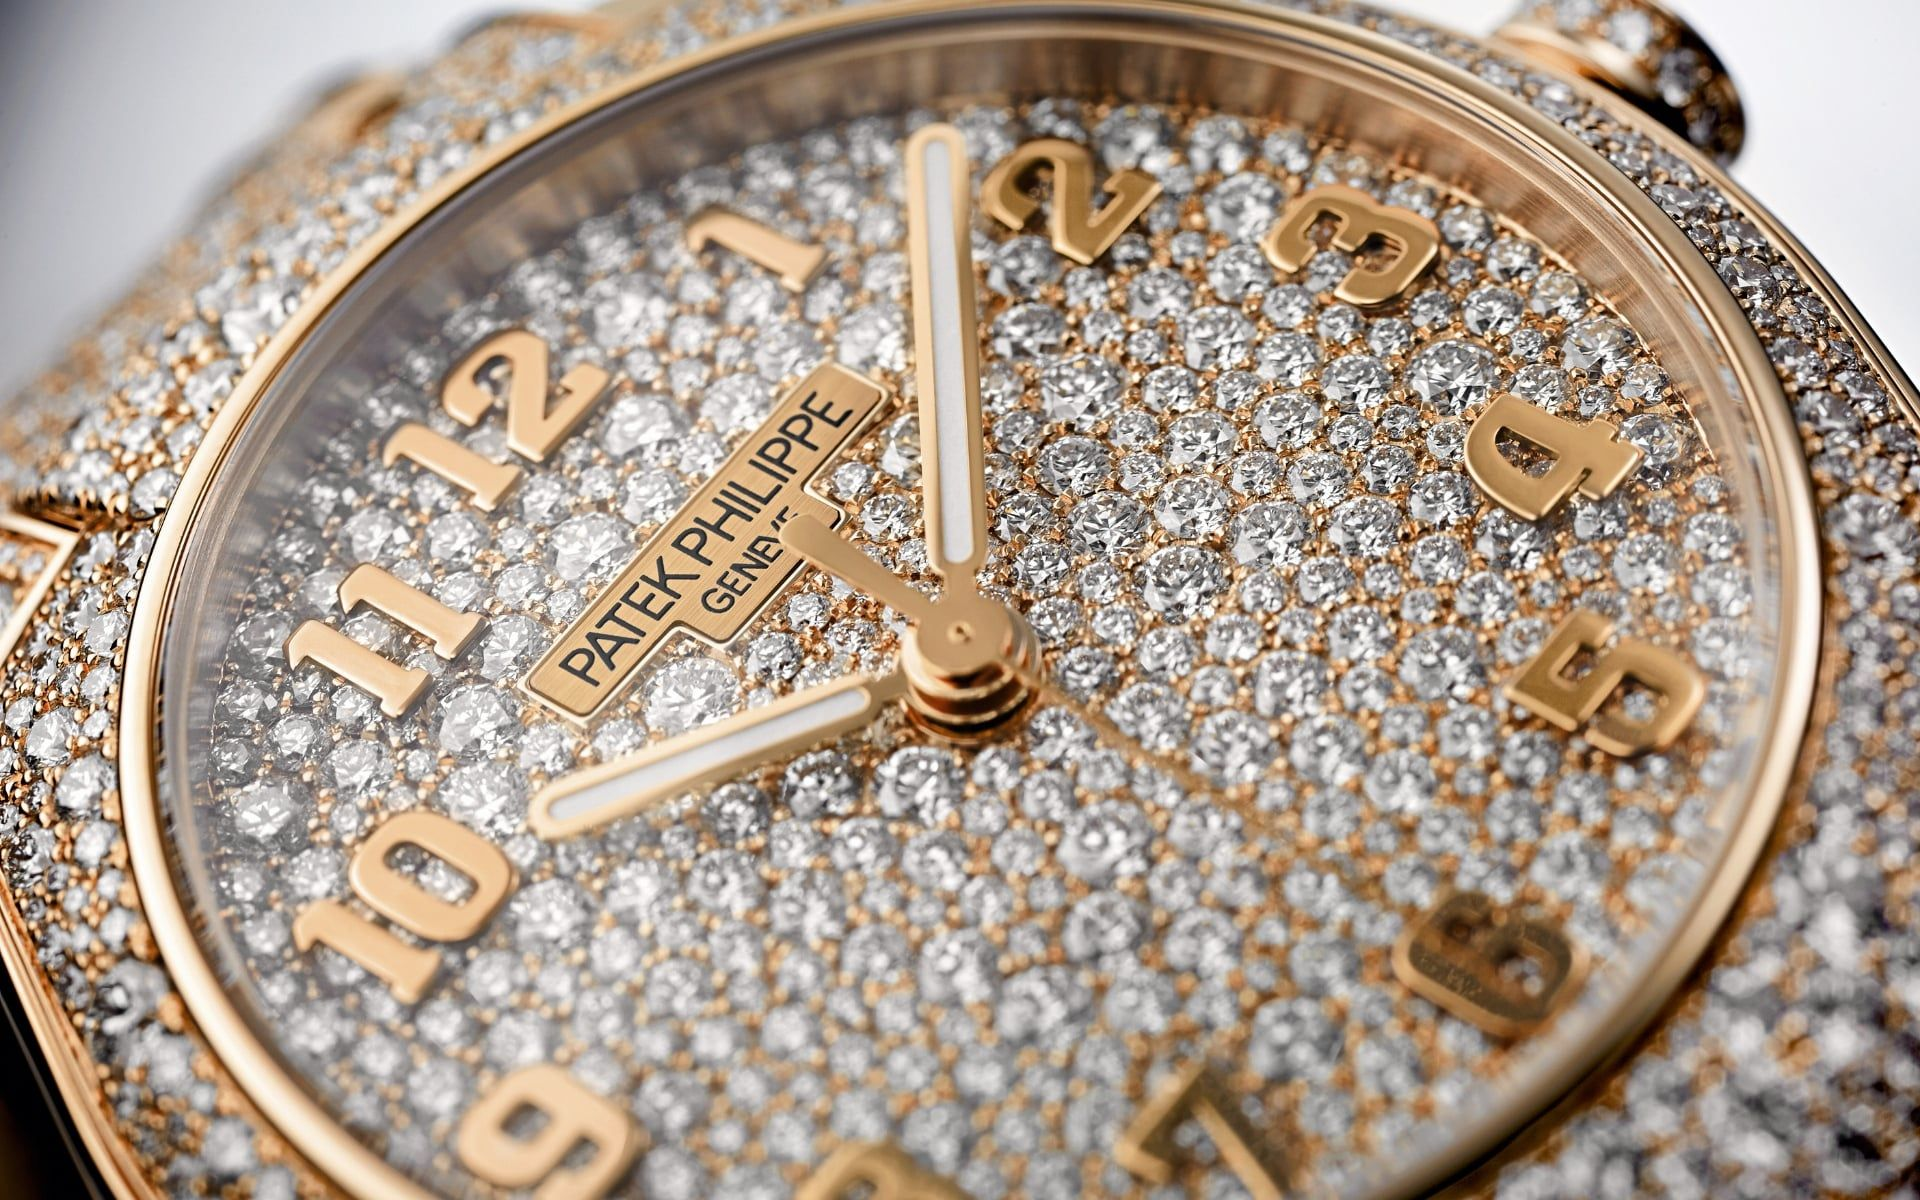 Patek Philippe Charms With Its New Feminine Timepieces